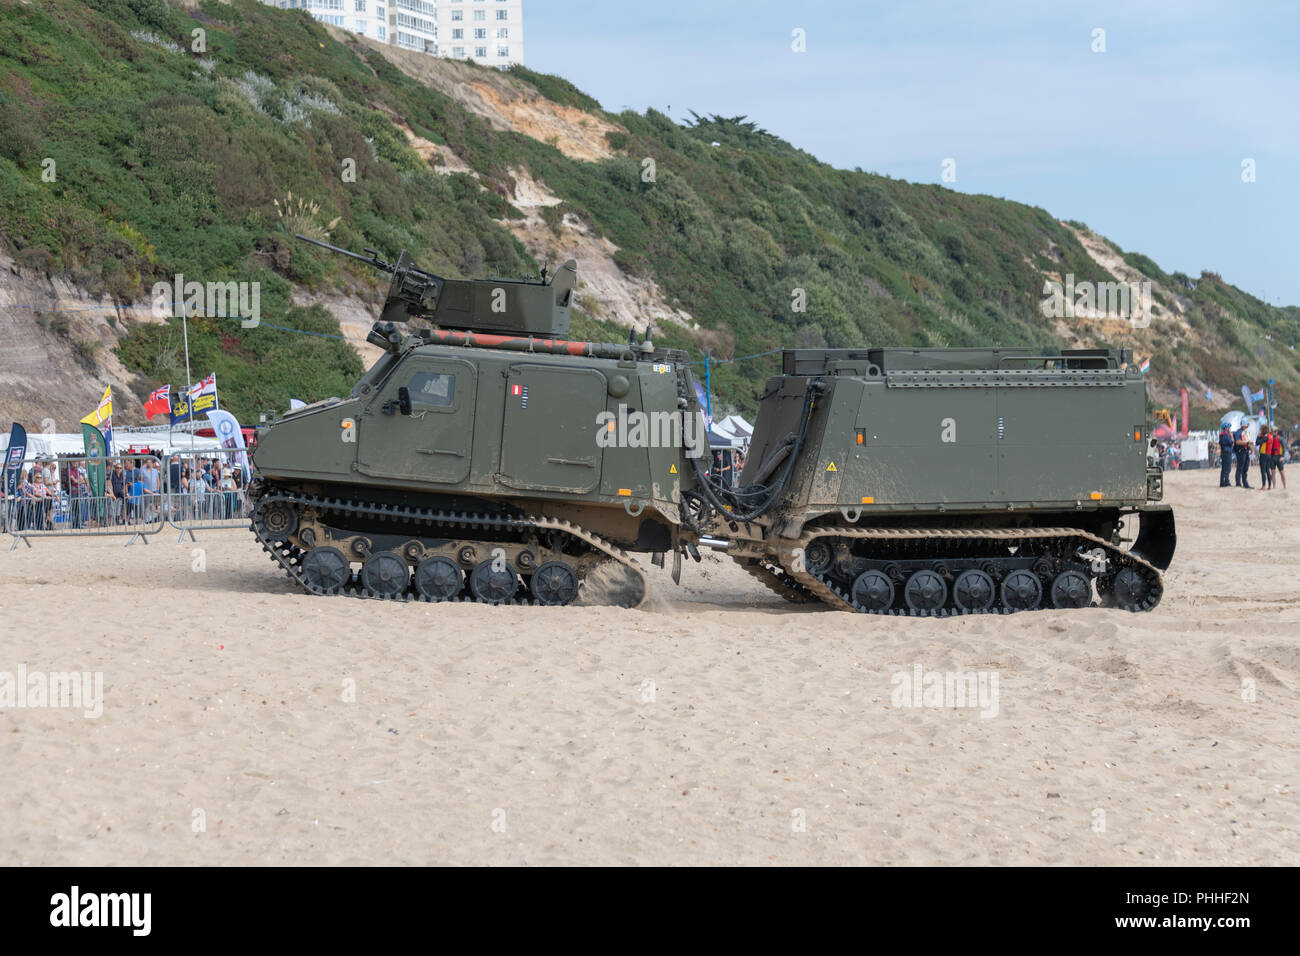 Bournemouth, UK. 1st September 2018. The Bournemouth Air Festival continues with good weather and huge crowds to for the free, annual festival on the beach in Bournemouth, Dorset. Displays from the Red Arrows, Tigers Parachute Display Team, Gravity Industries Jet Suit, a Chinook Helicopter and the Breitling Jet Team among others. Credit: Thomas Faull/Alamy Live News Stock Photo